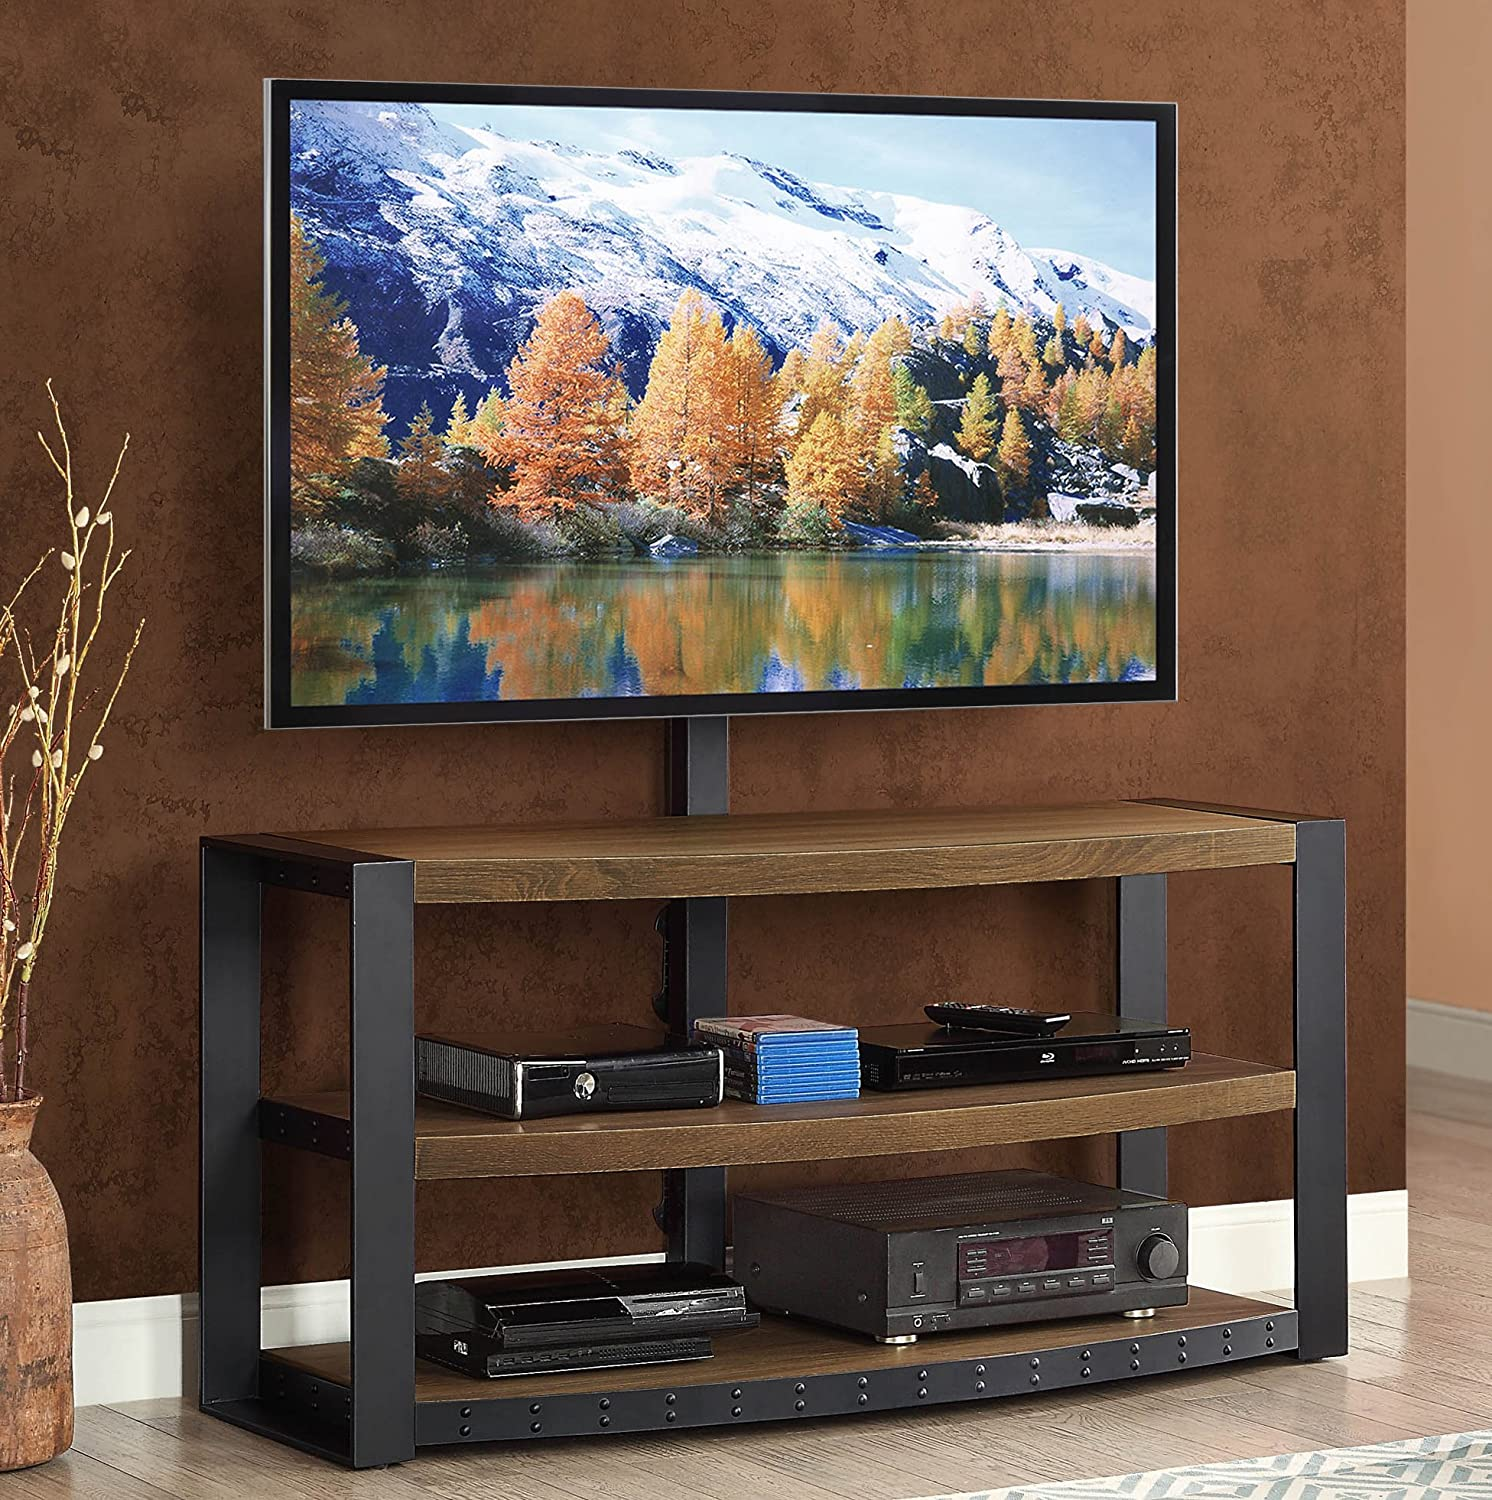 The 5 Best TV Stands In 2018: Reviews & Buying Guide 20